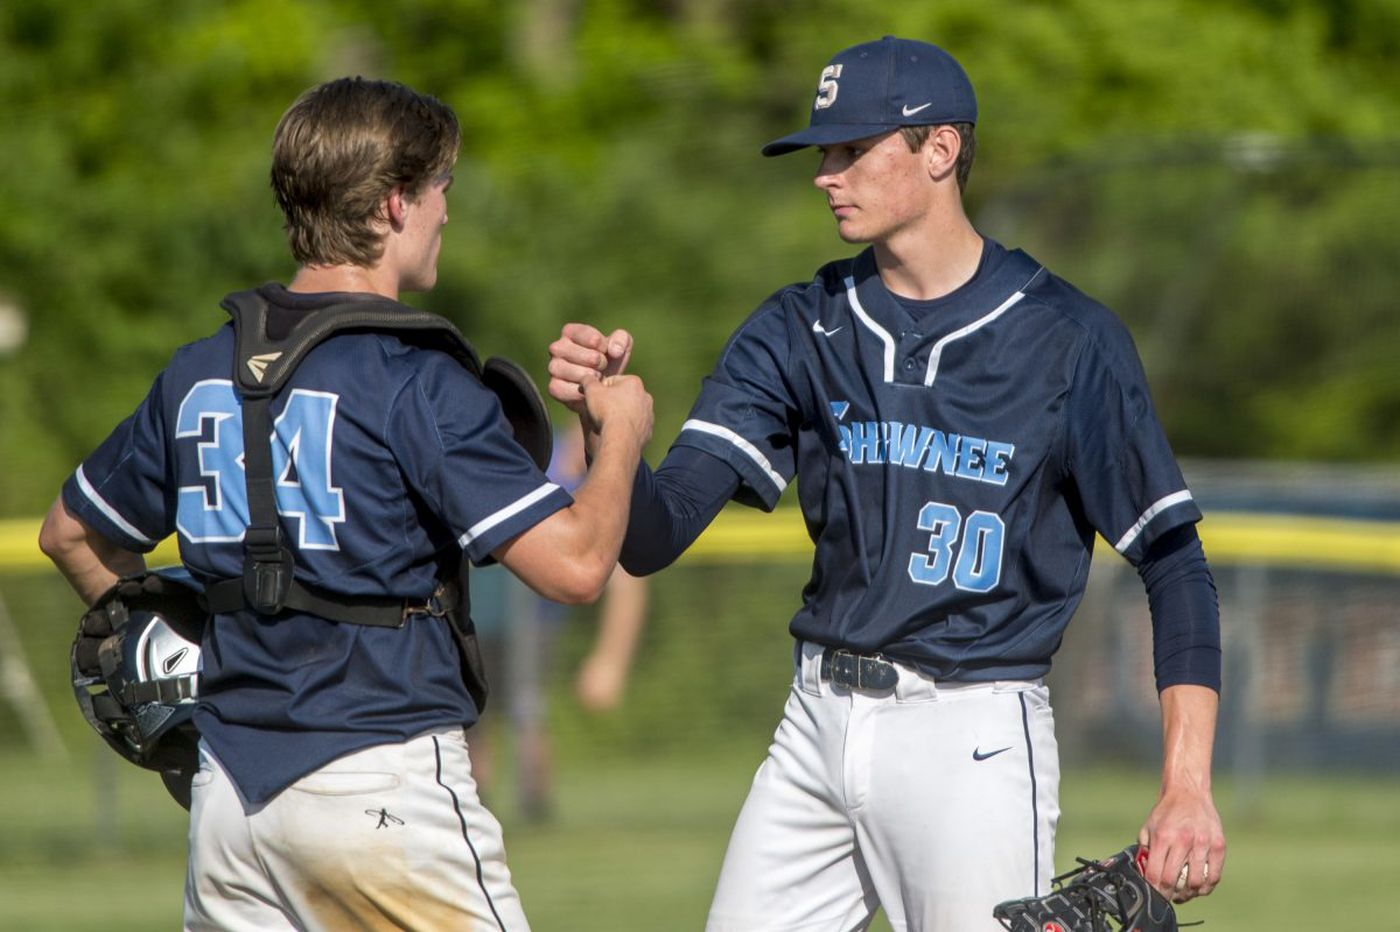 Dan Frake pitches Shawnee past Washington Township